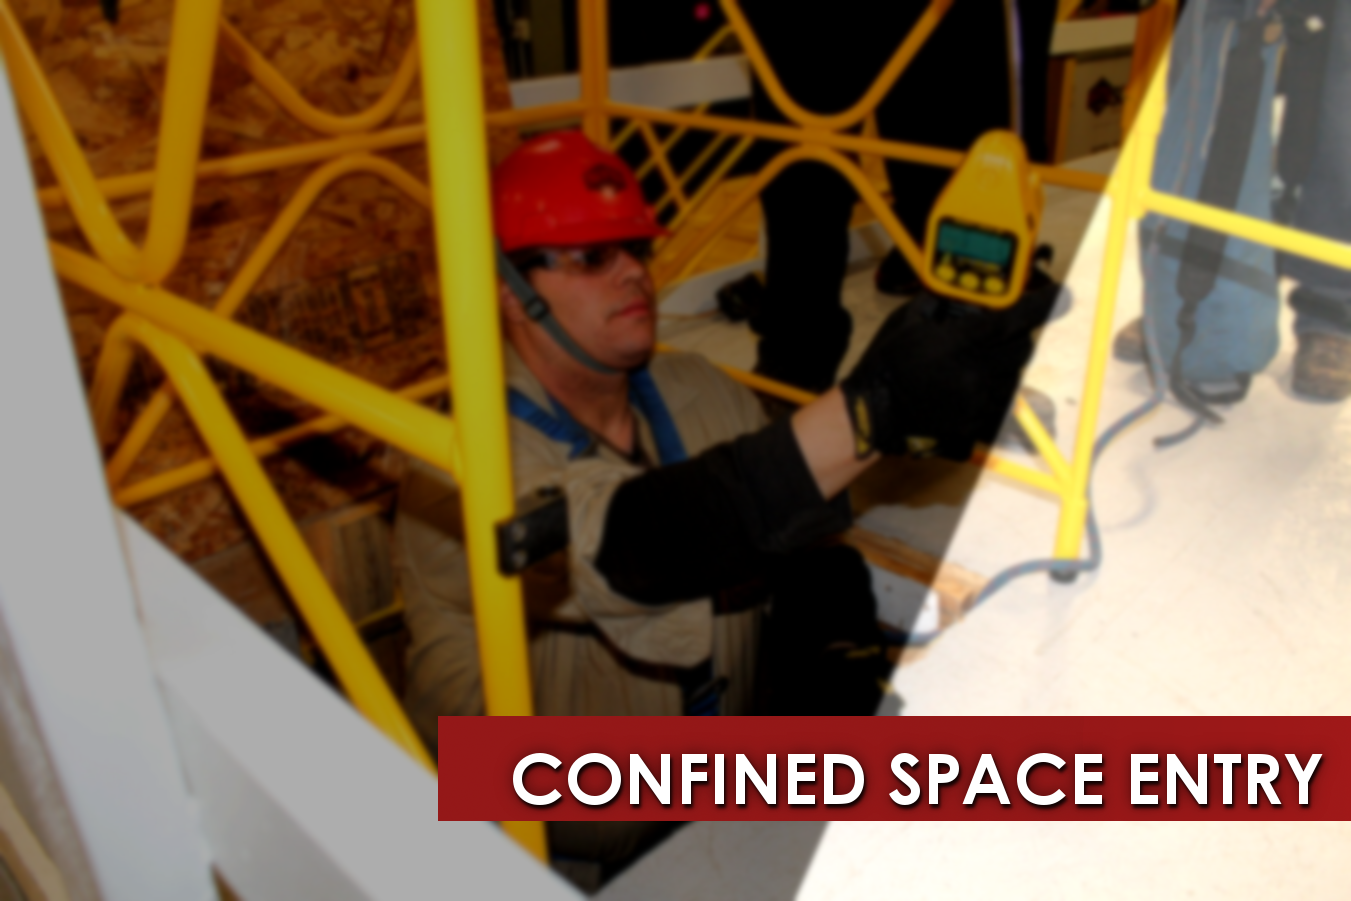 Confined Space Entry Training | Safety Training Services